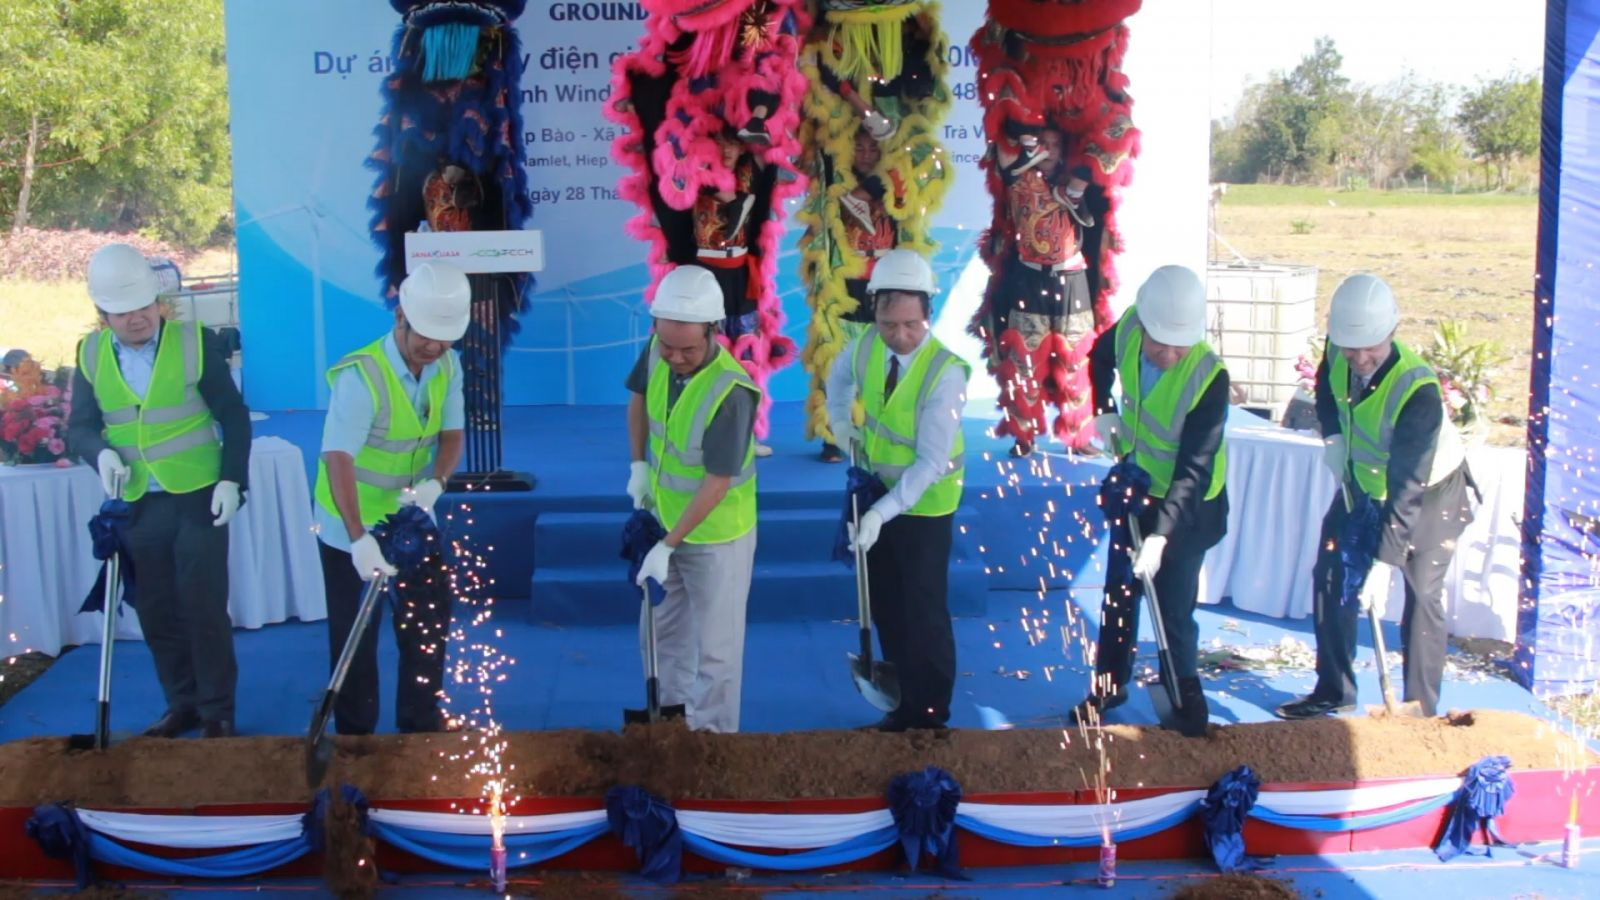 groundbreaking-hiep-thanh-wind-power-plant-tra-vinh